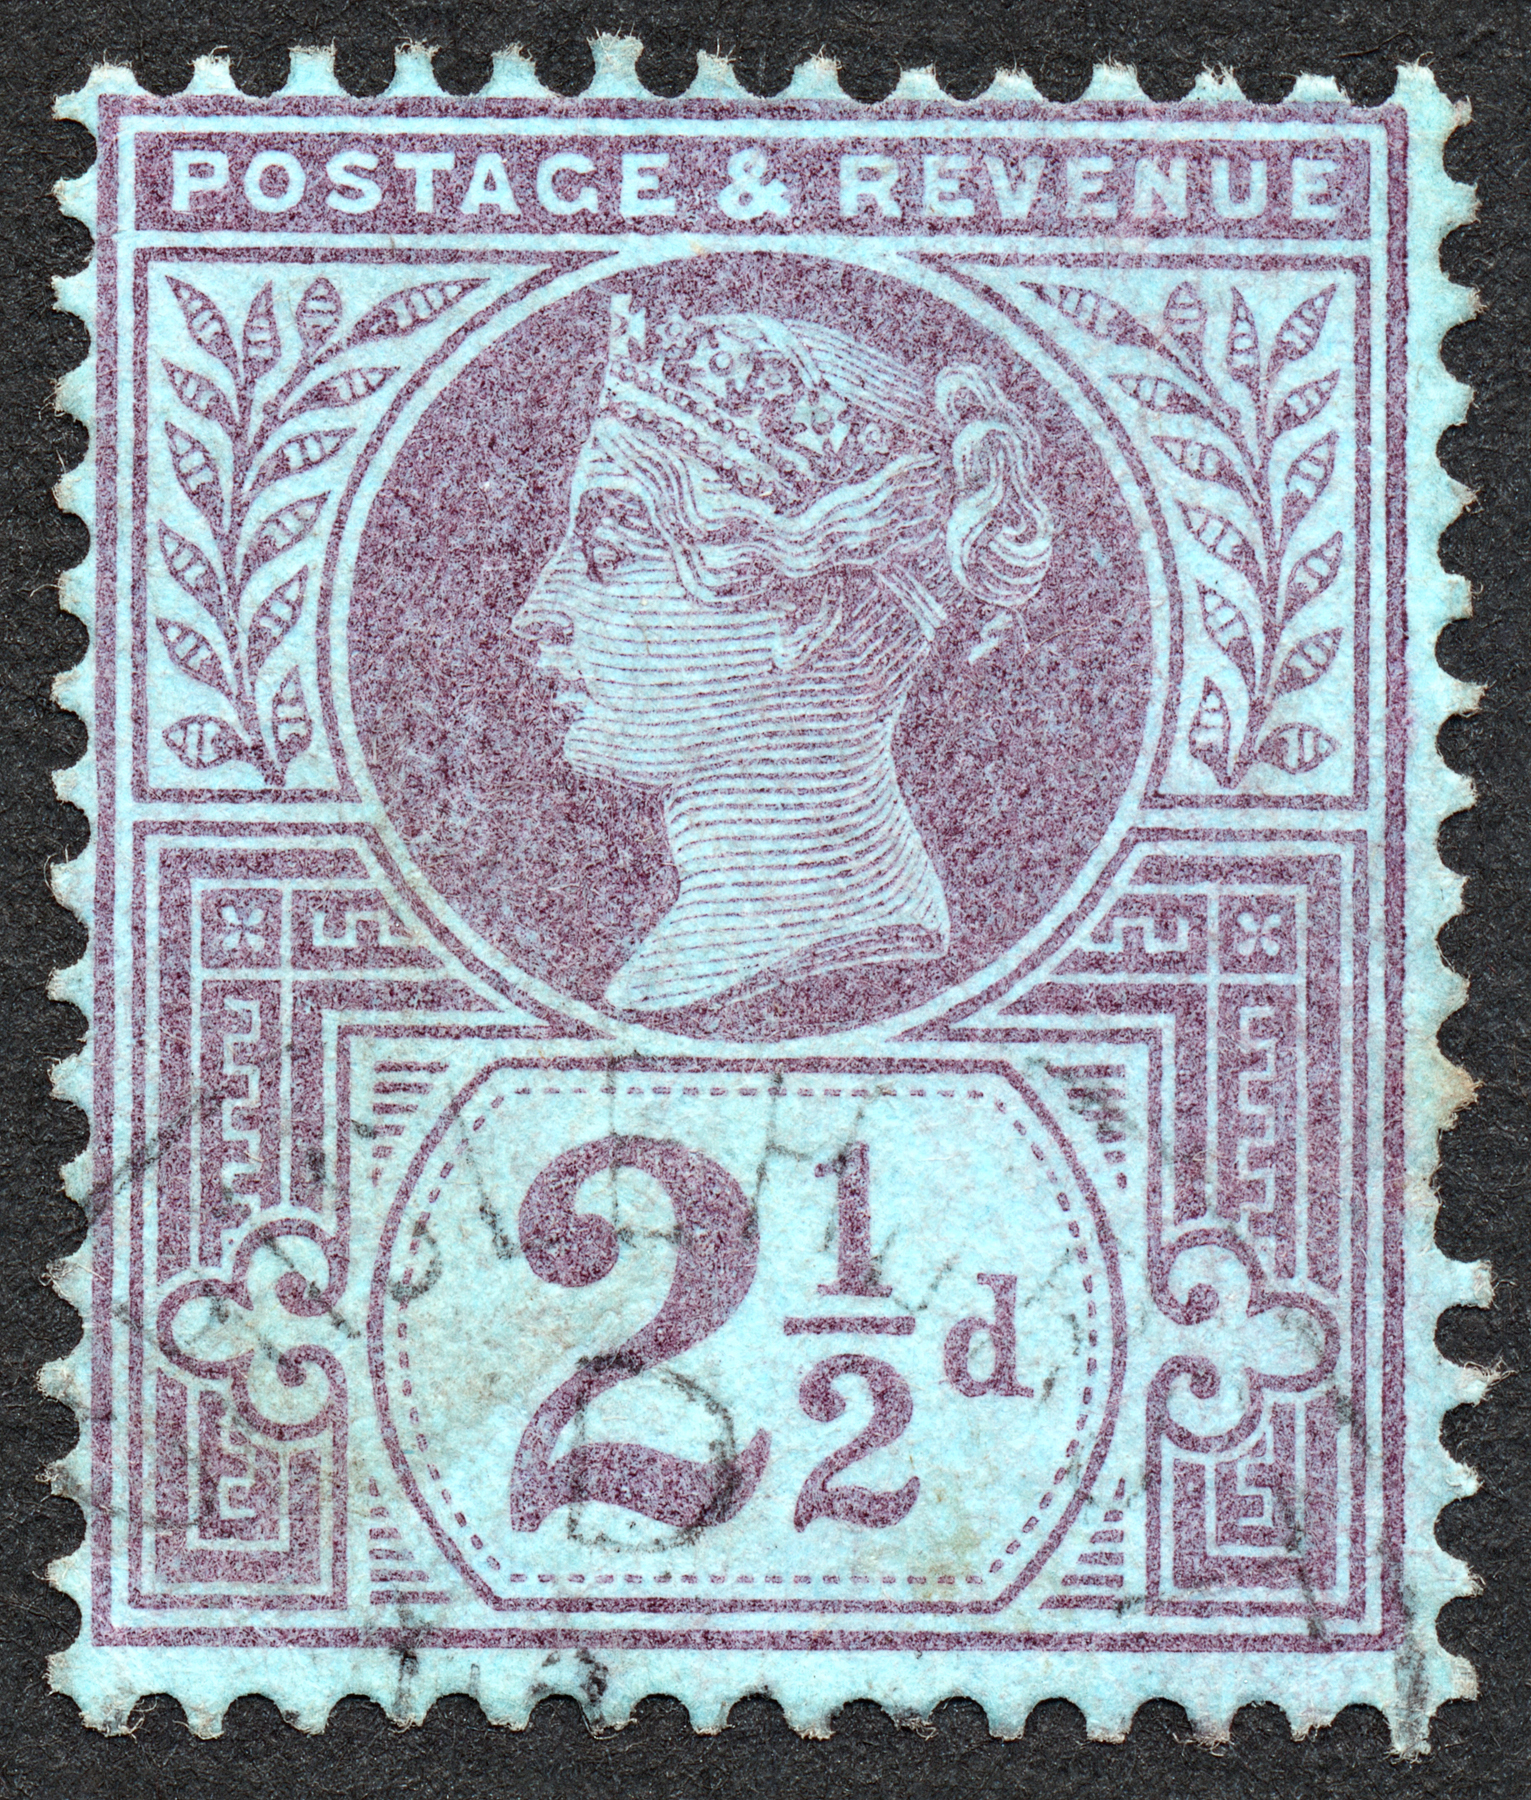 Blue-violet queen victoria stamp photo